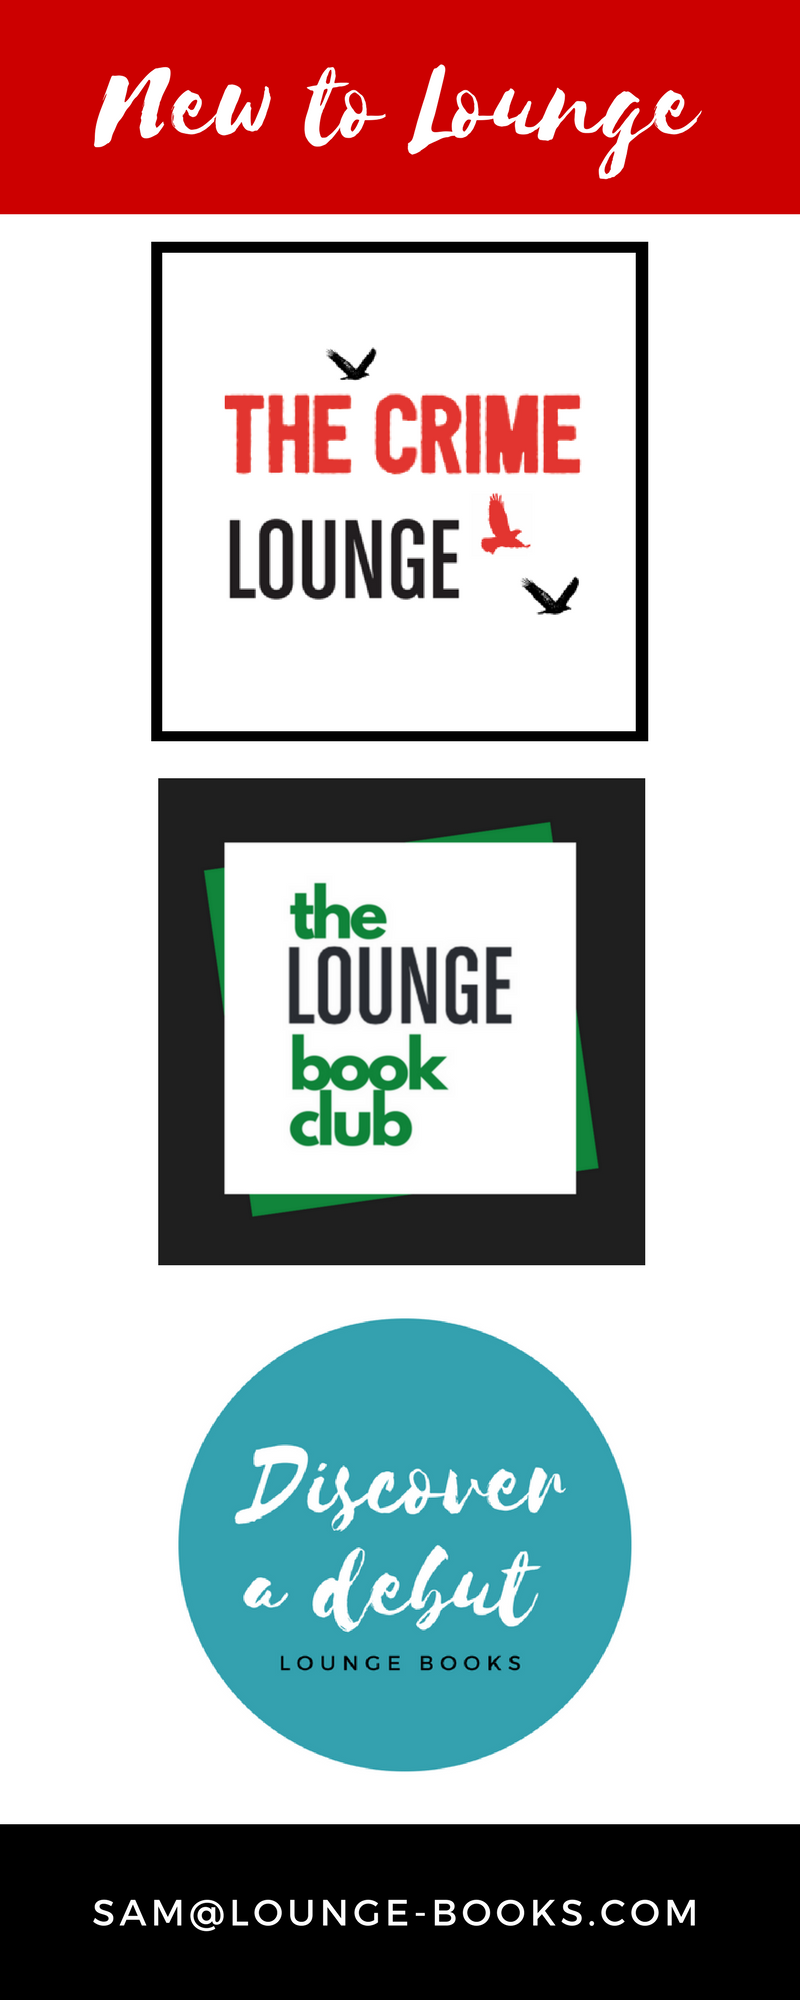 LB - Lounge Books new features.png